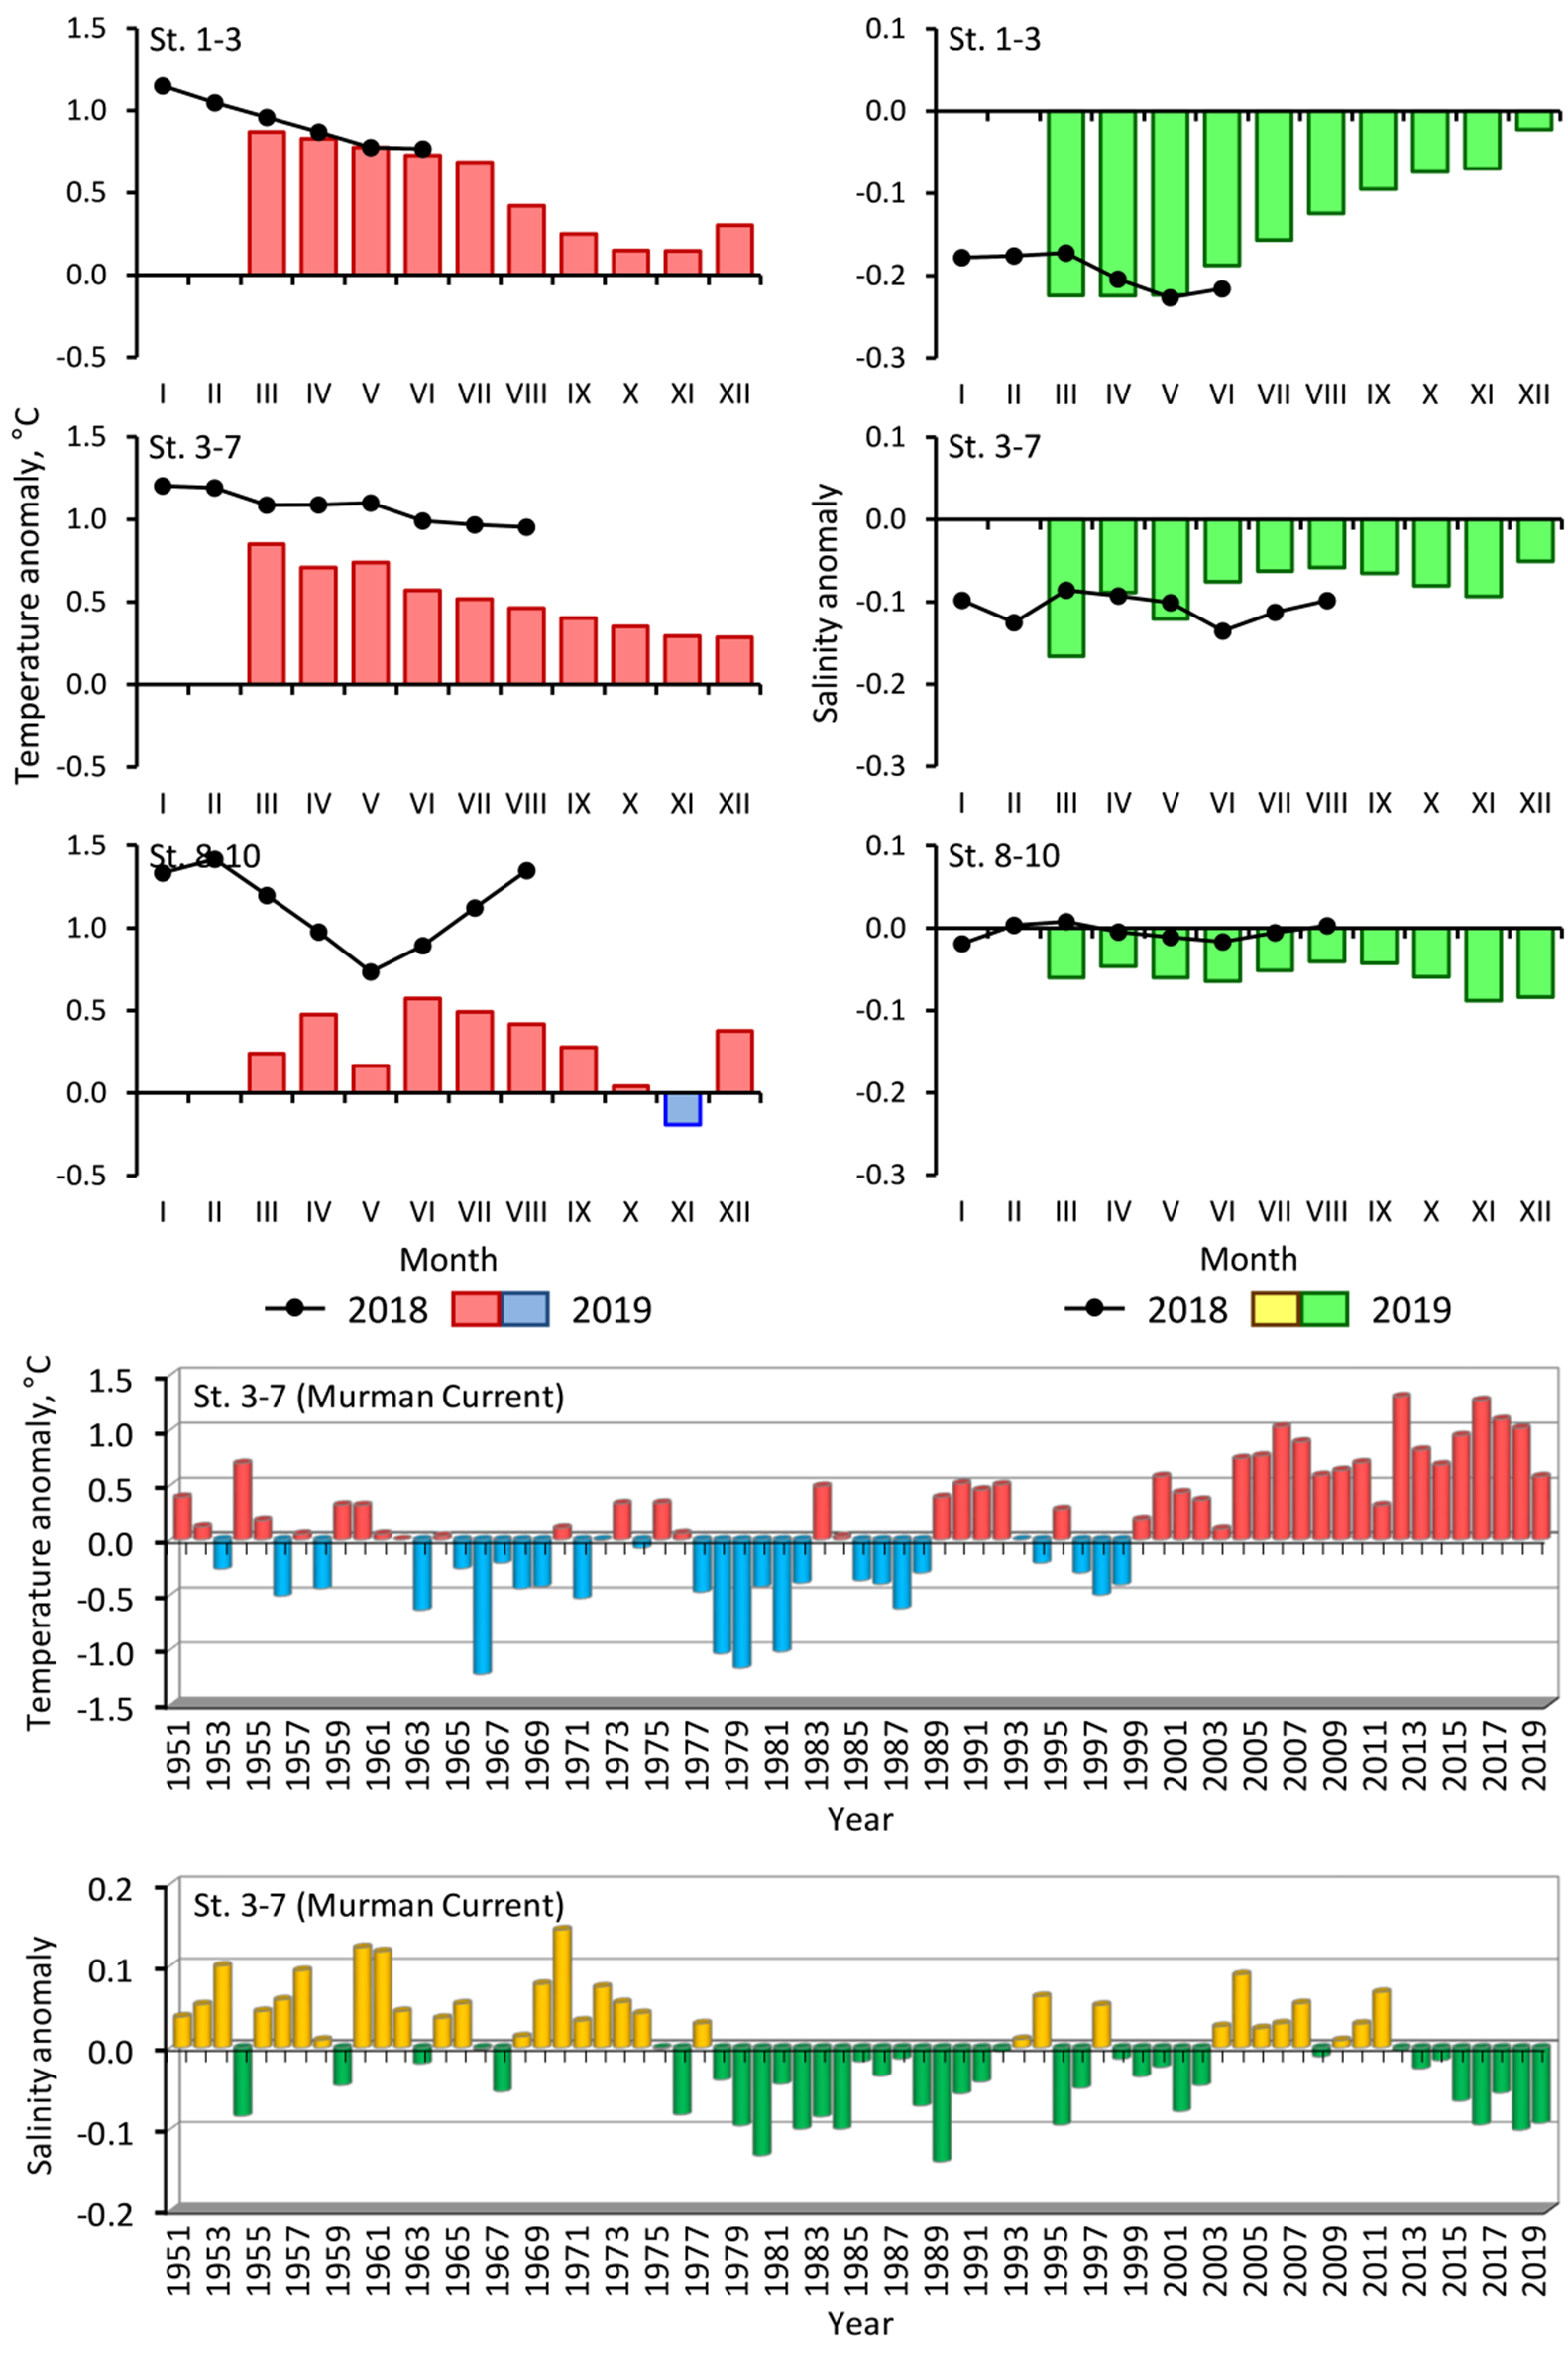 Figure 3.1.6. Monthly and annual temperature and salinity anomalies in the 0–200 m layer in the Kola Section. St. 1–3 – Coastal waters, St. 3–7 – Murman Current, St. 8–10 – Central branch of the North Cape Current (Anon., 2019). Annual mean values for 2016–2019 were recovered.